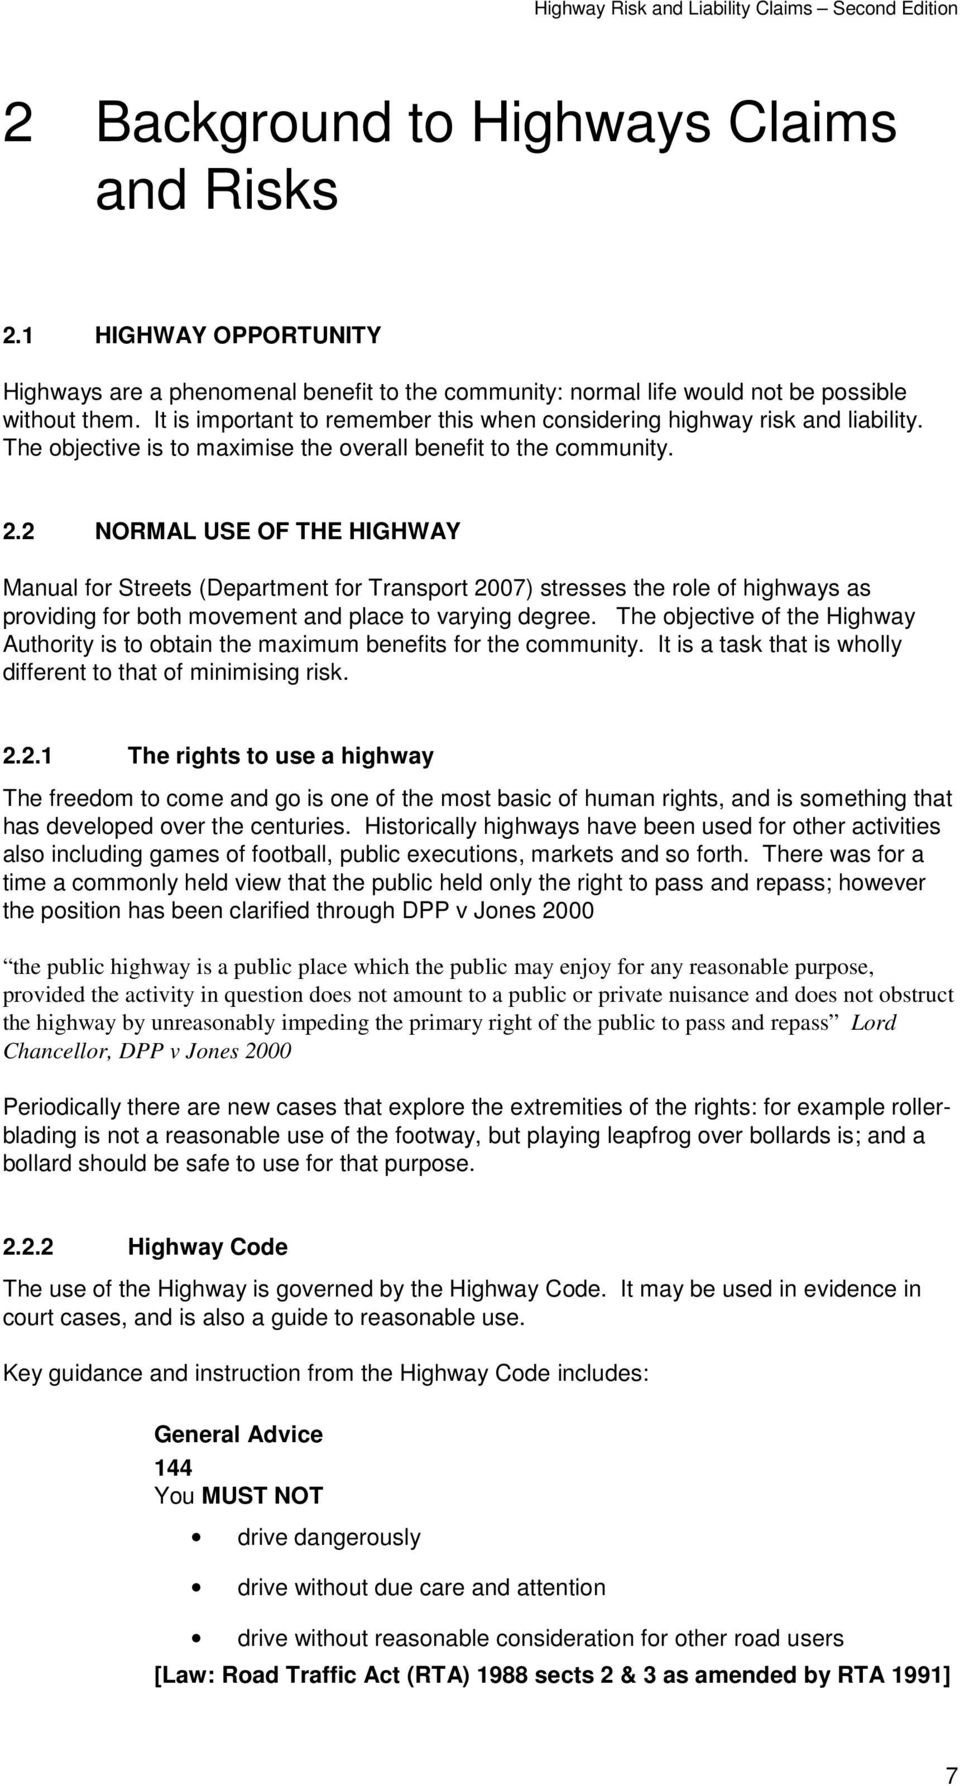 2 NORMAL USE OF THE HIGHWAY Manual for Streets (Department for Transport 2007) stresses the role of highways as providing for both movement and place to varying degree.